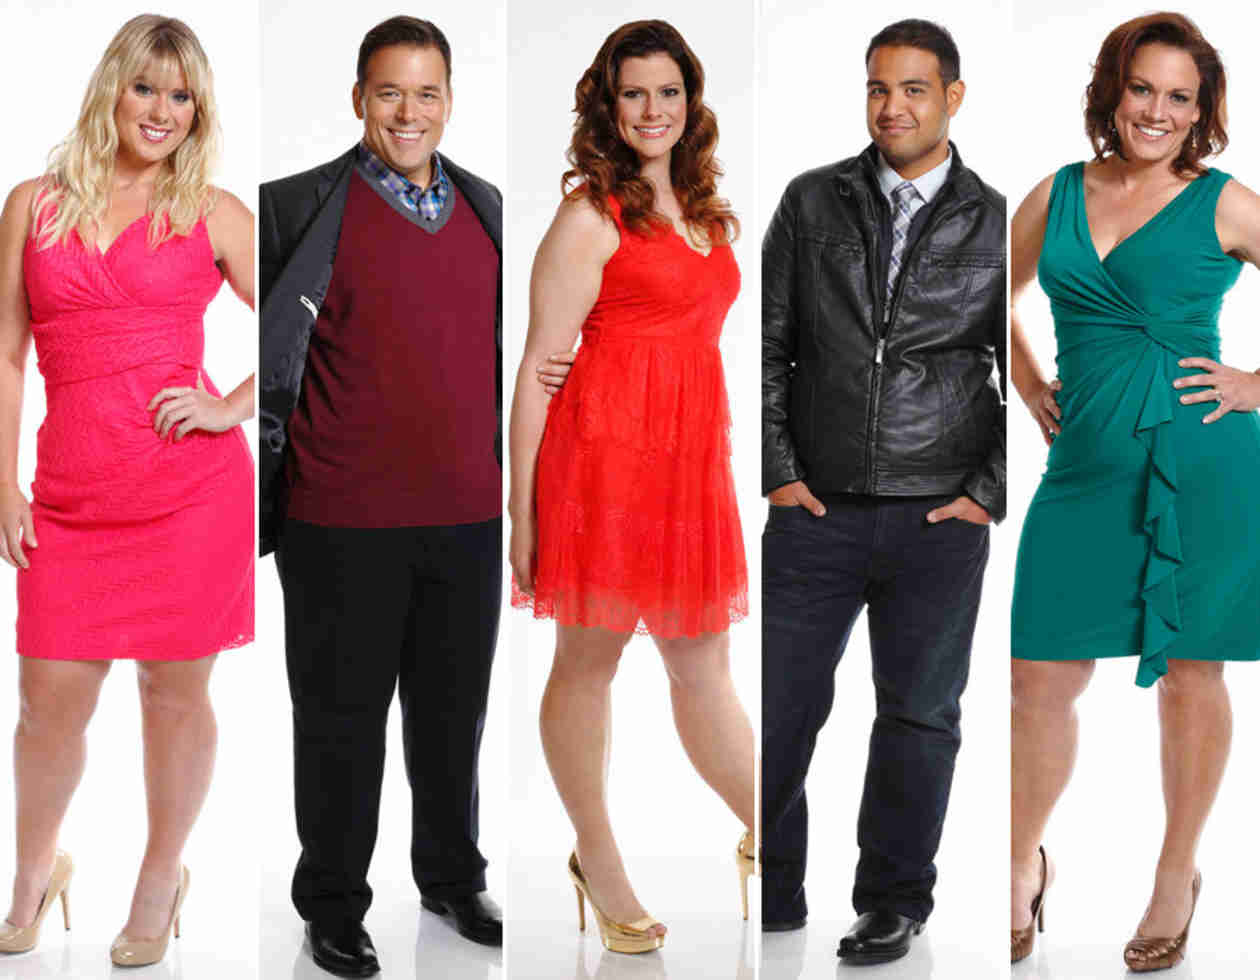 The Biggest Loser: Who Will Win Season 15?